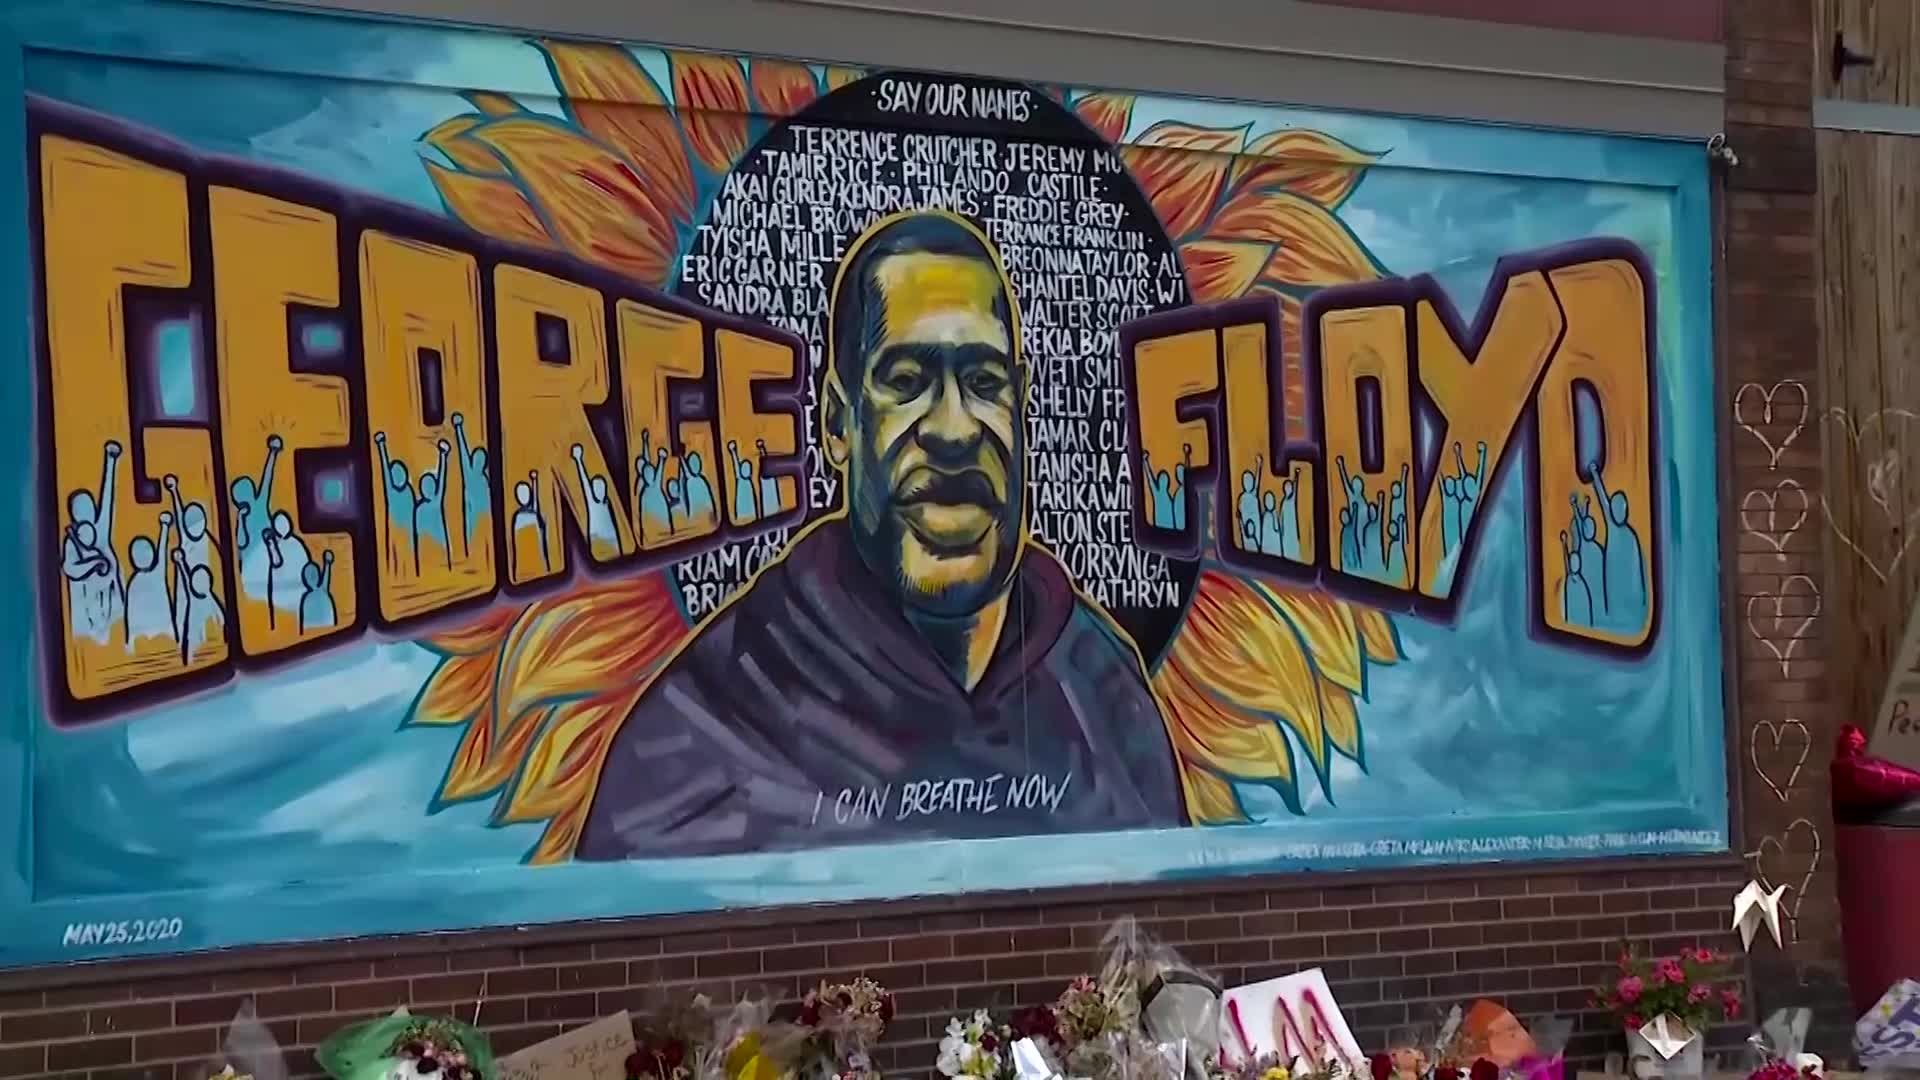 A file image of a mural of George Floyd in Minneapolis.